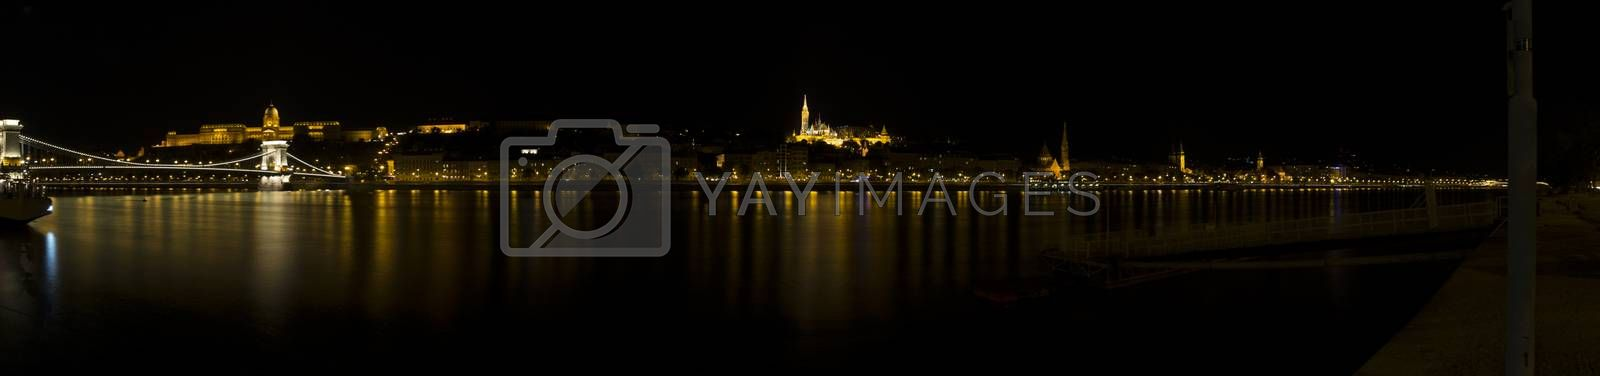 A  night view of the Danube river in Budapest in Hungary: